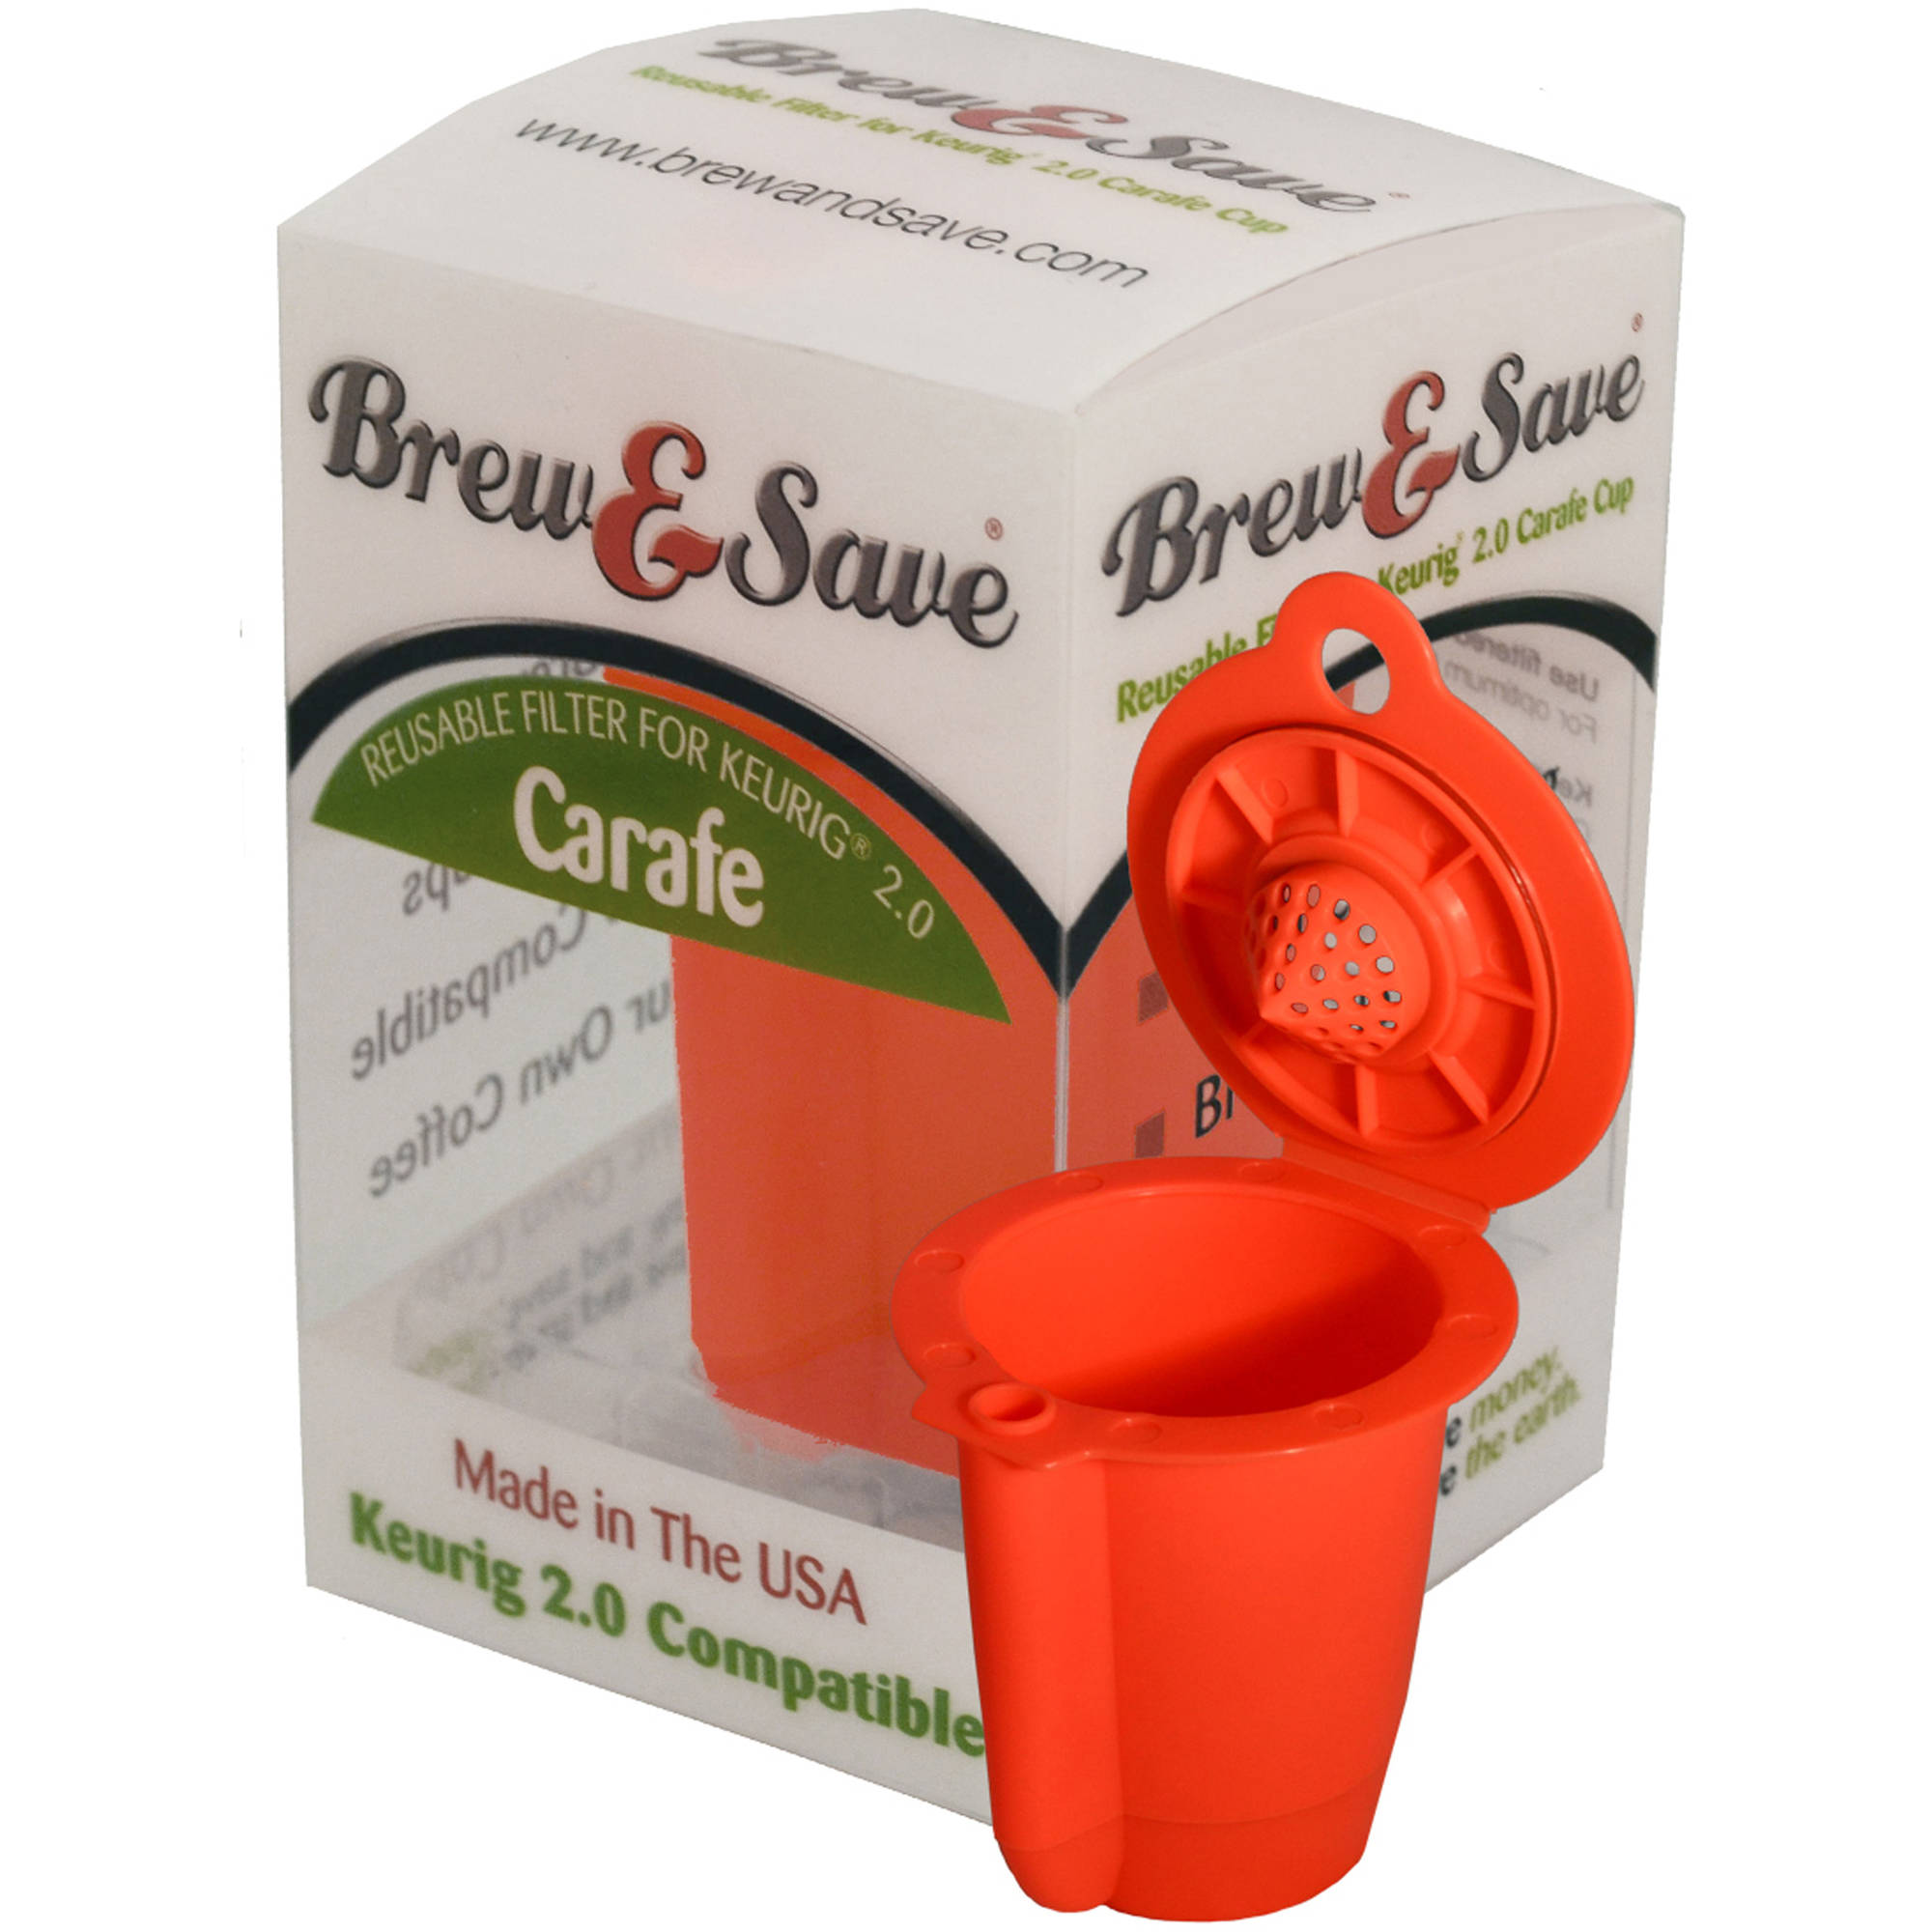 Brew and Save Reusable Carafe Coffee Filter for Keurig 2.0 Brewer by EkoBrands, LLC